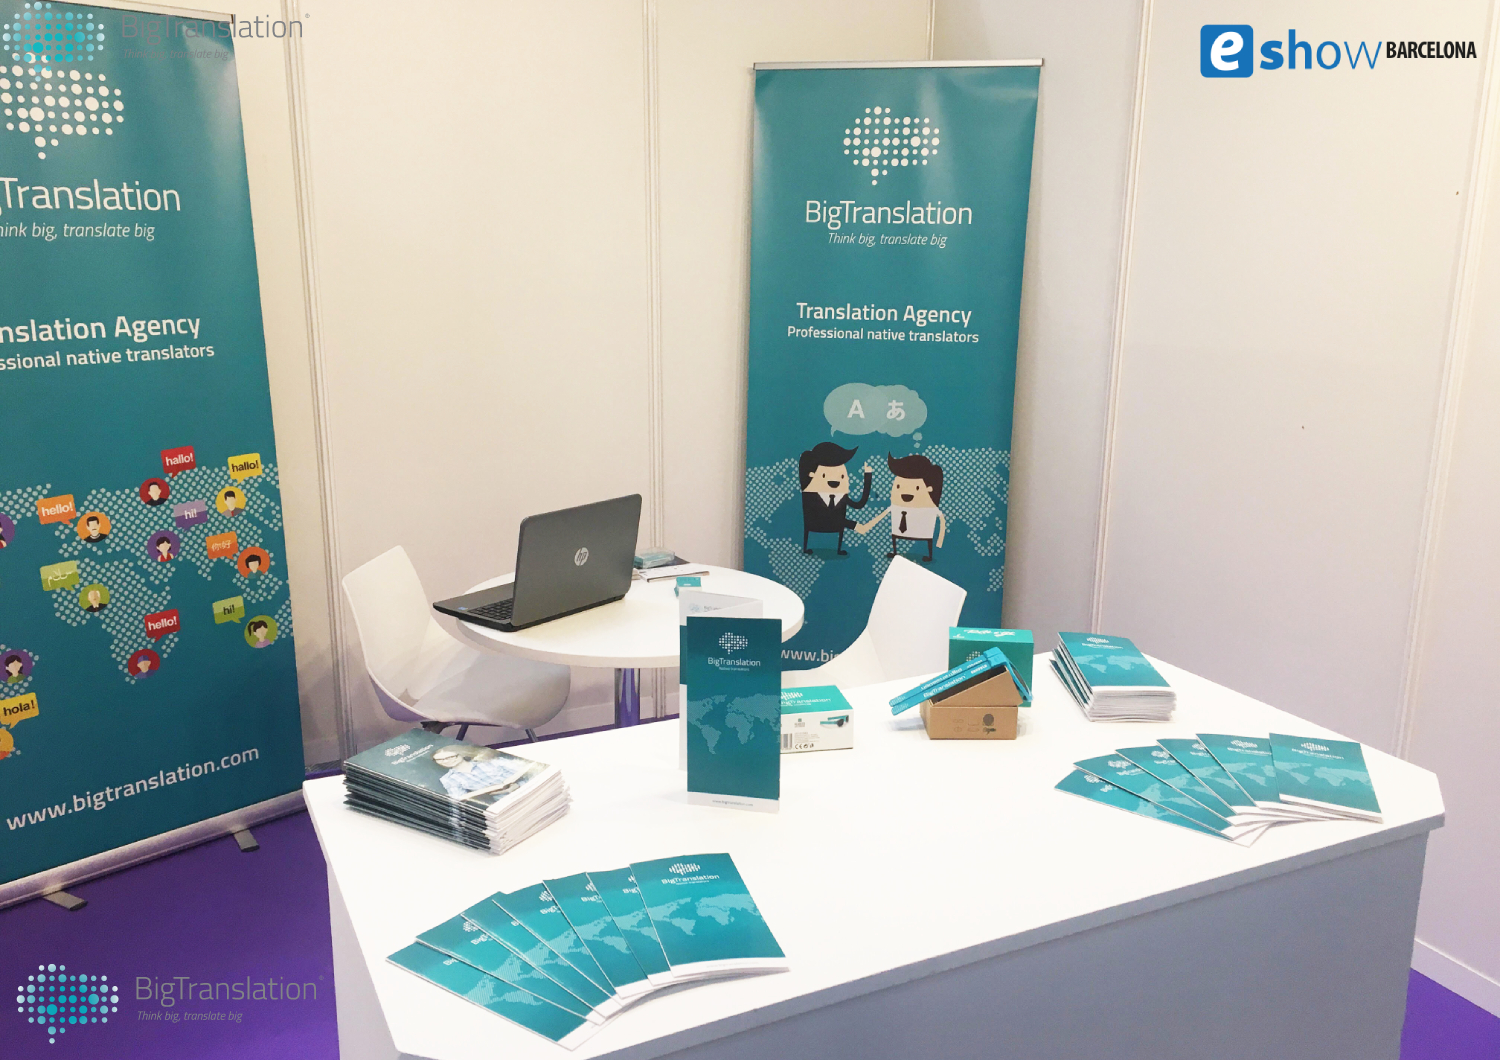 BigTranslation at the Barcelona eShow